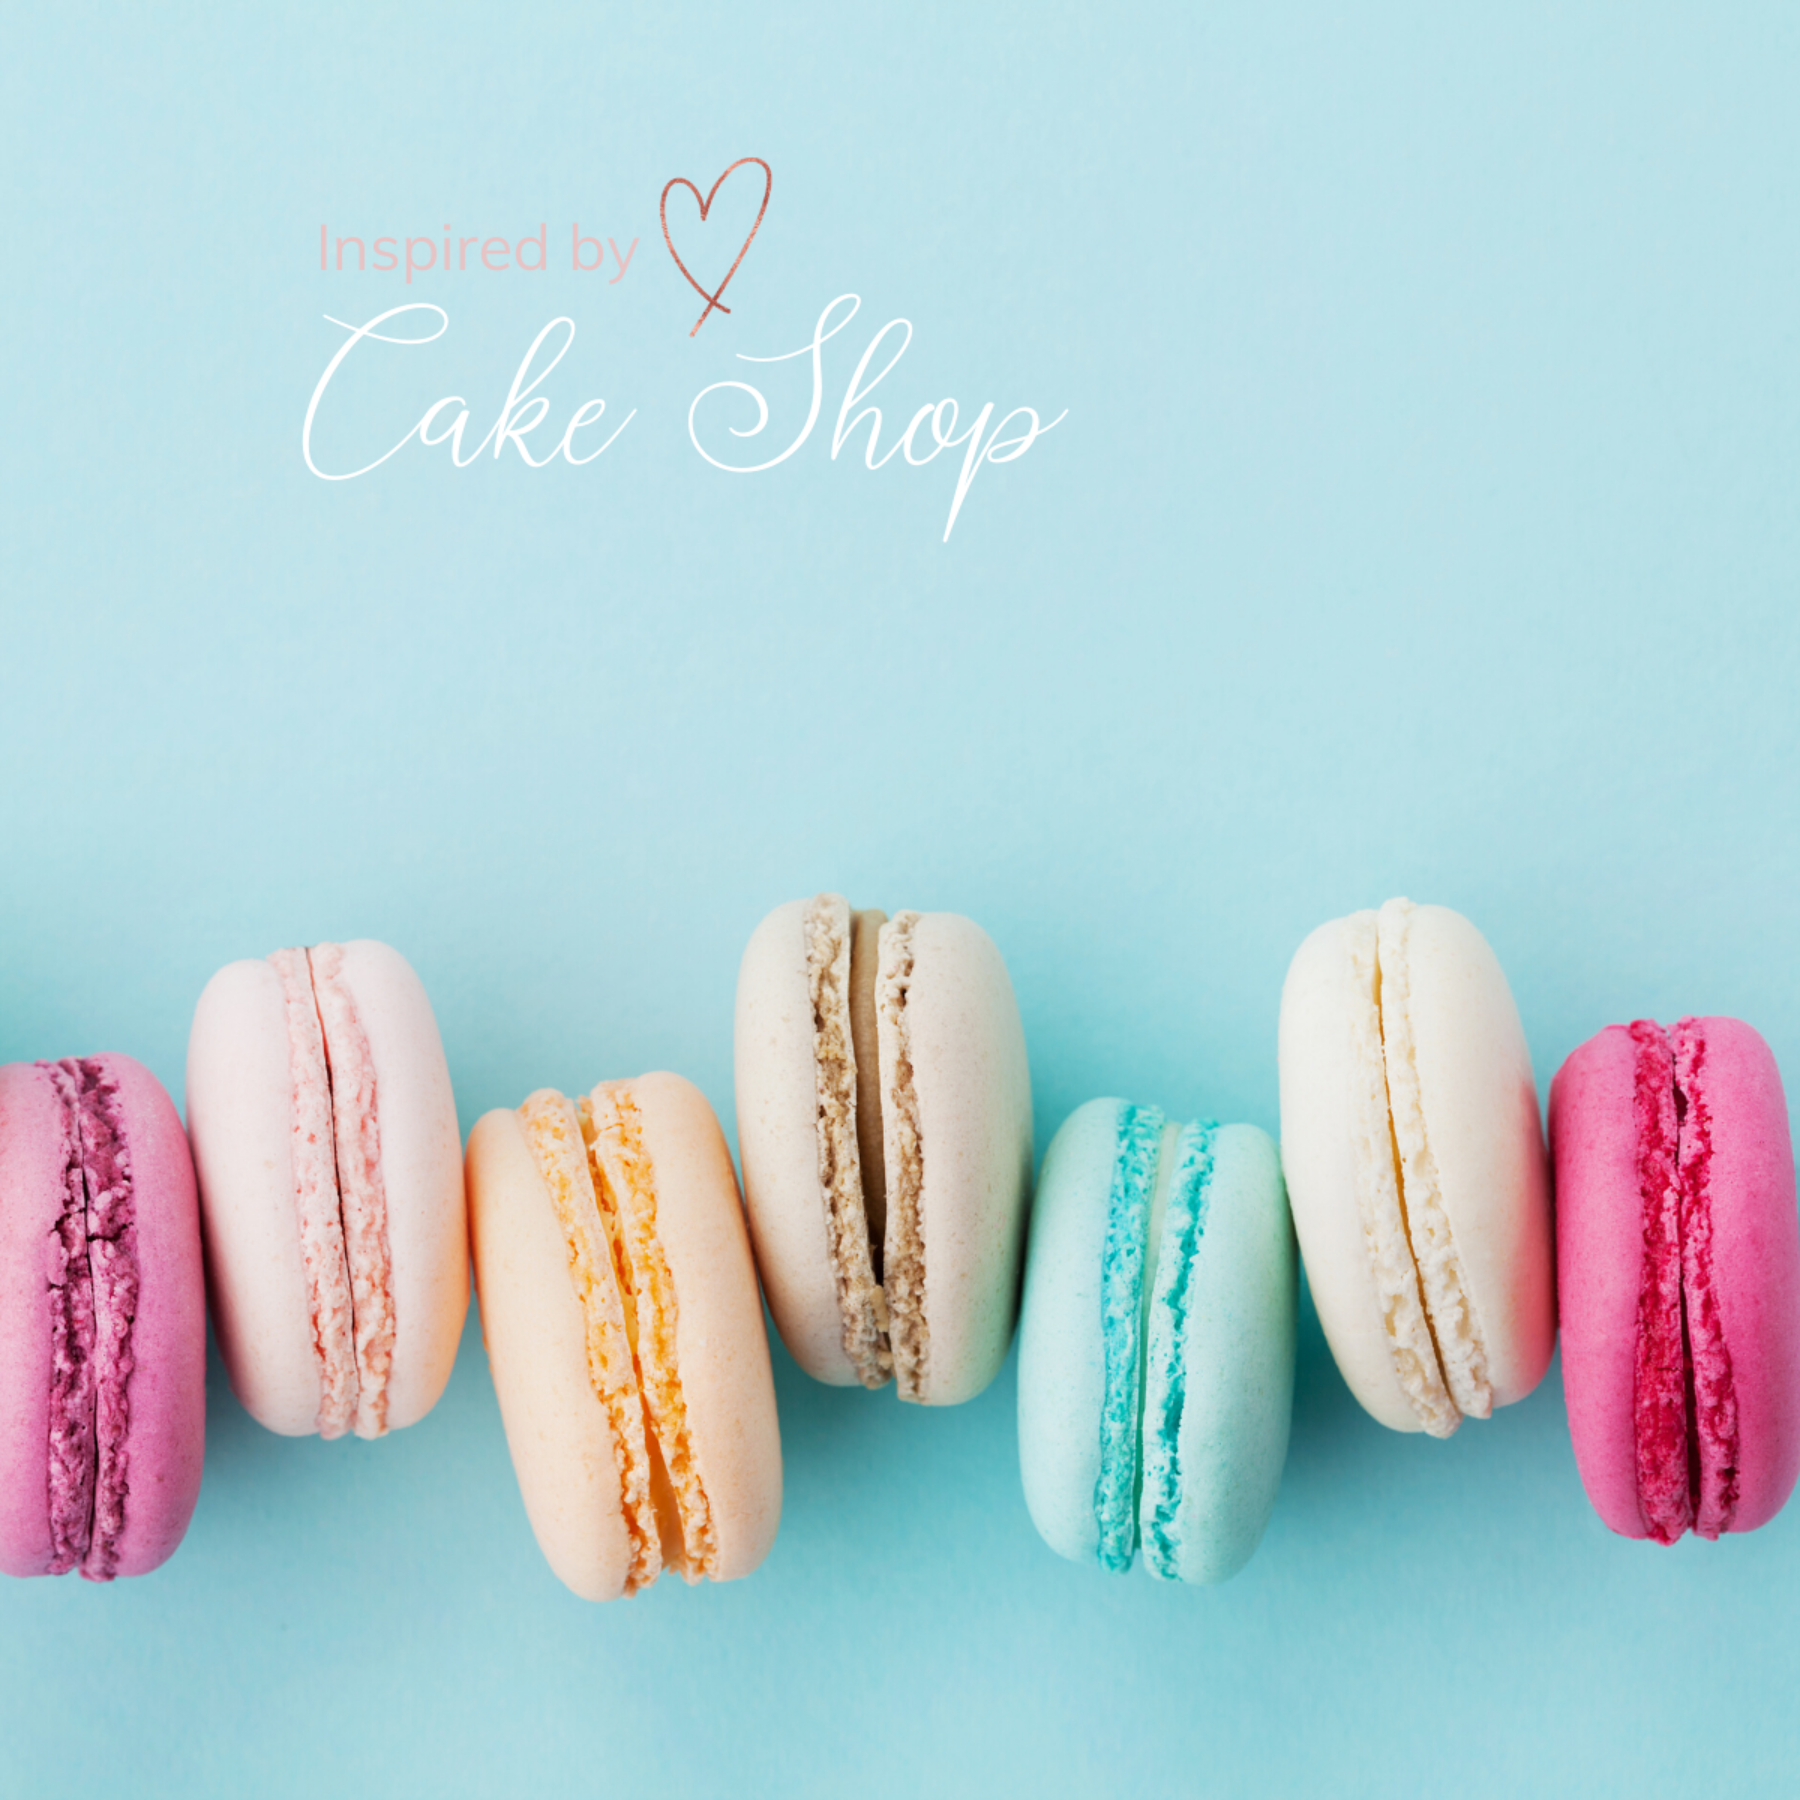 Cake Shop Inspired Wax Melts